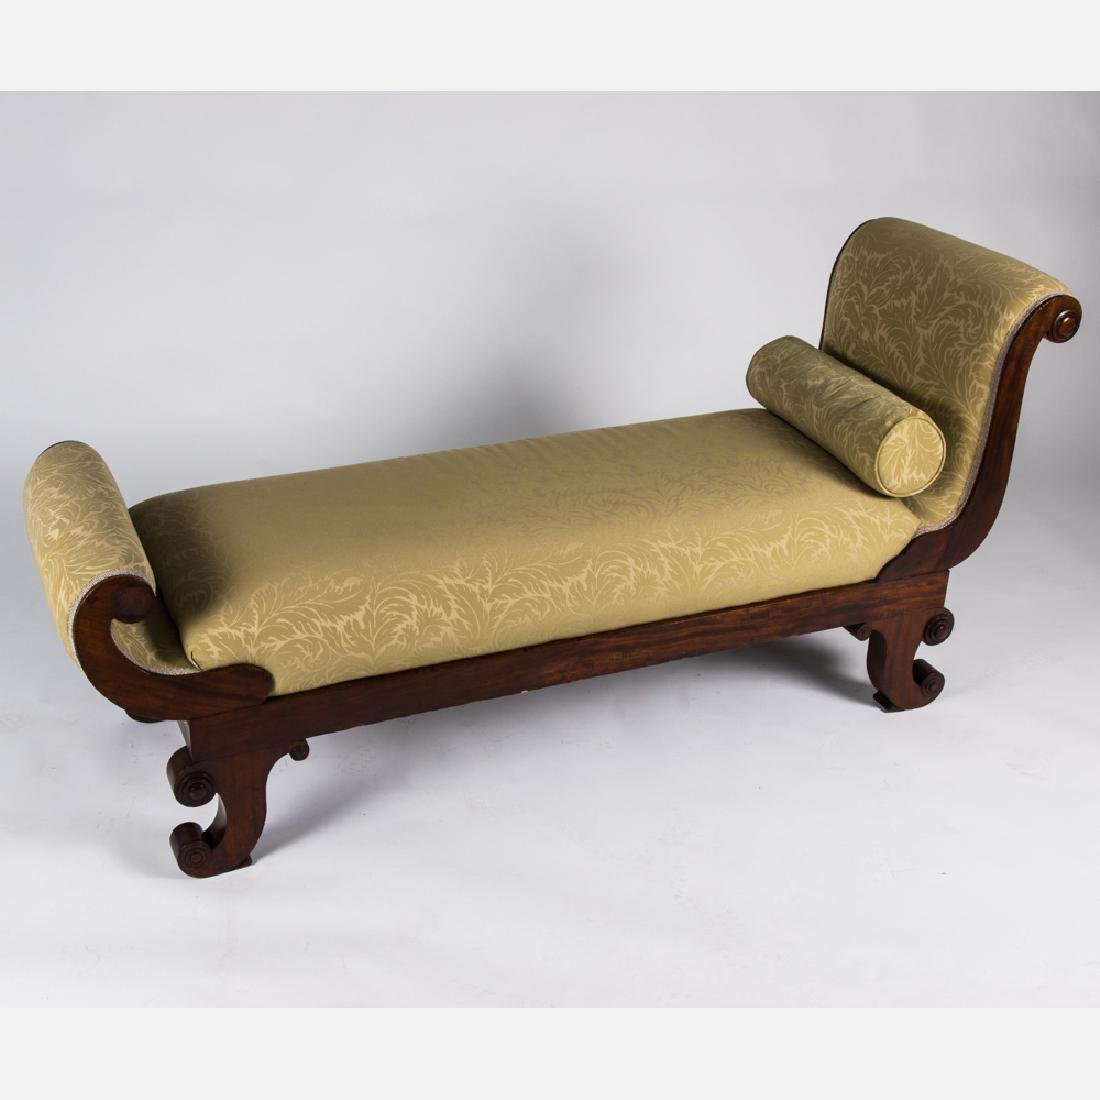 An Empire Style Mahogany Chaise Lounge, 19th Century.